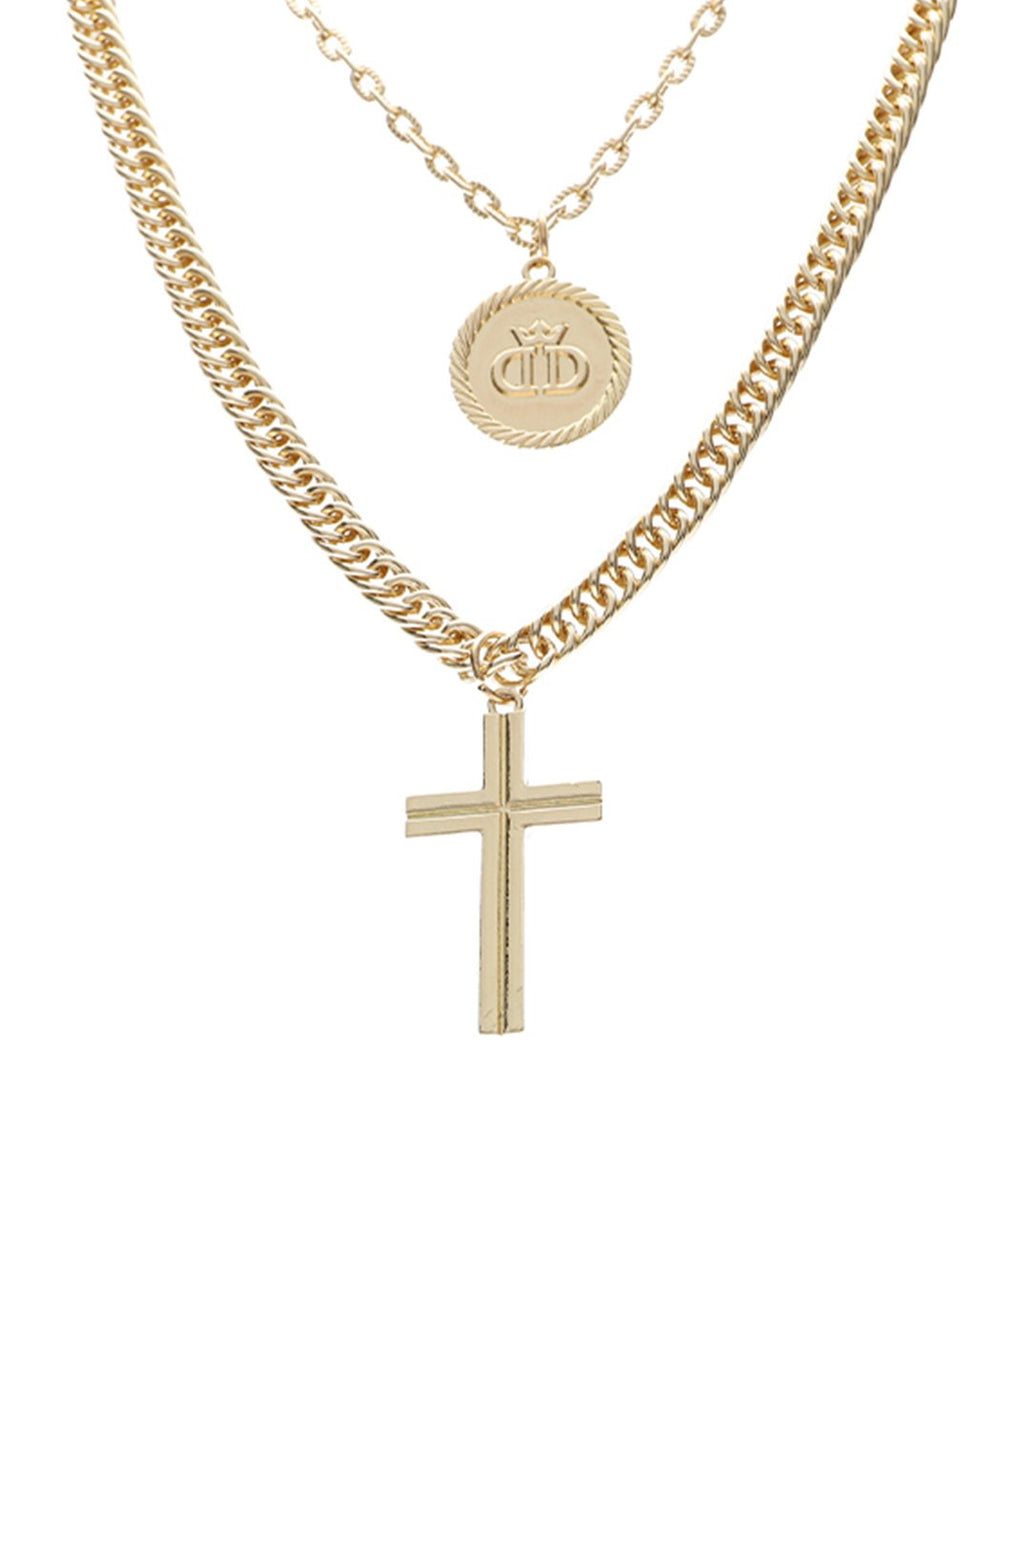 Mathers Double Chain _ 121182 _ Gold